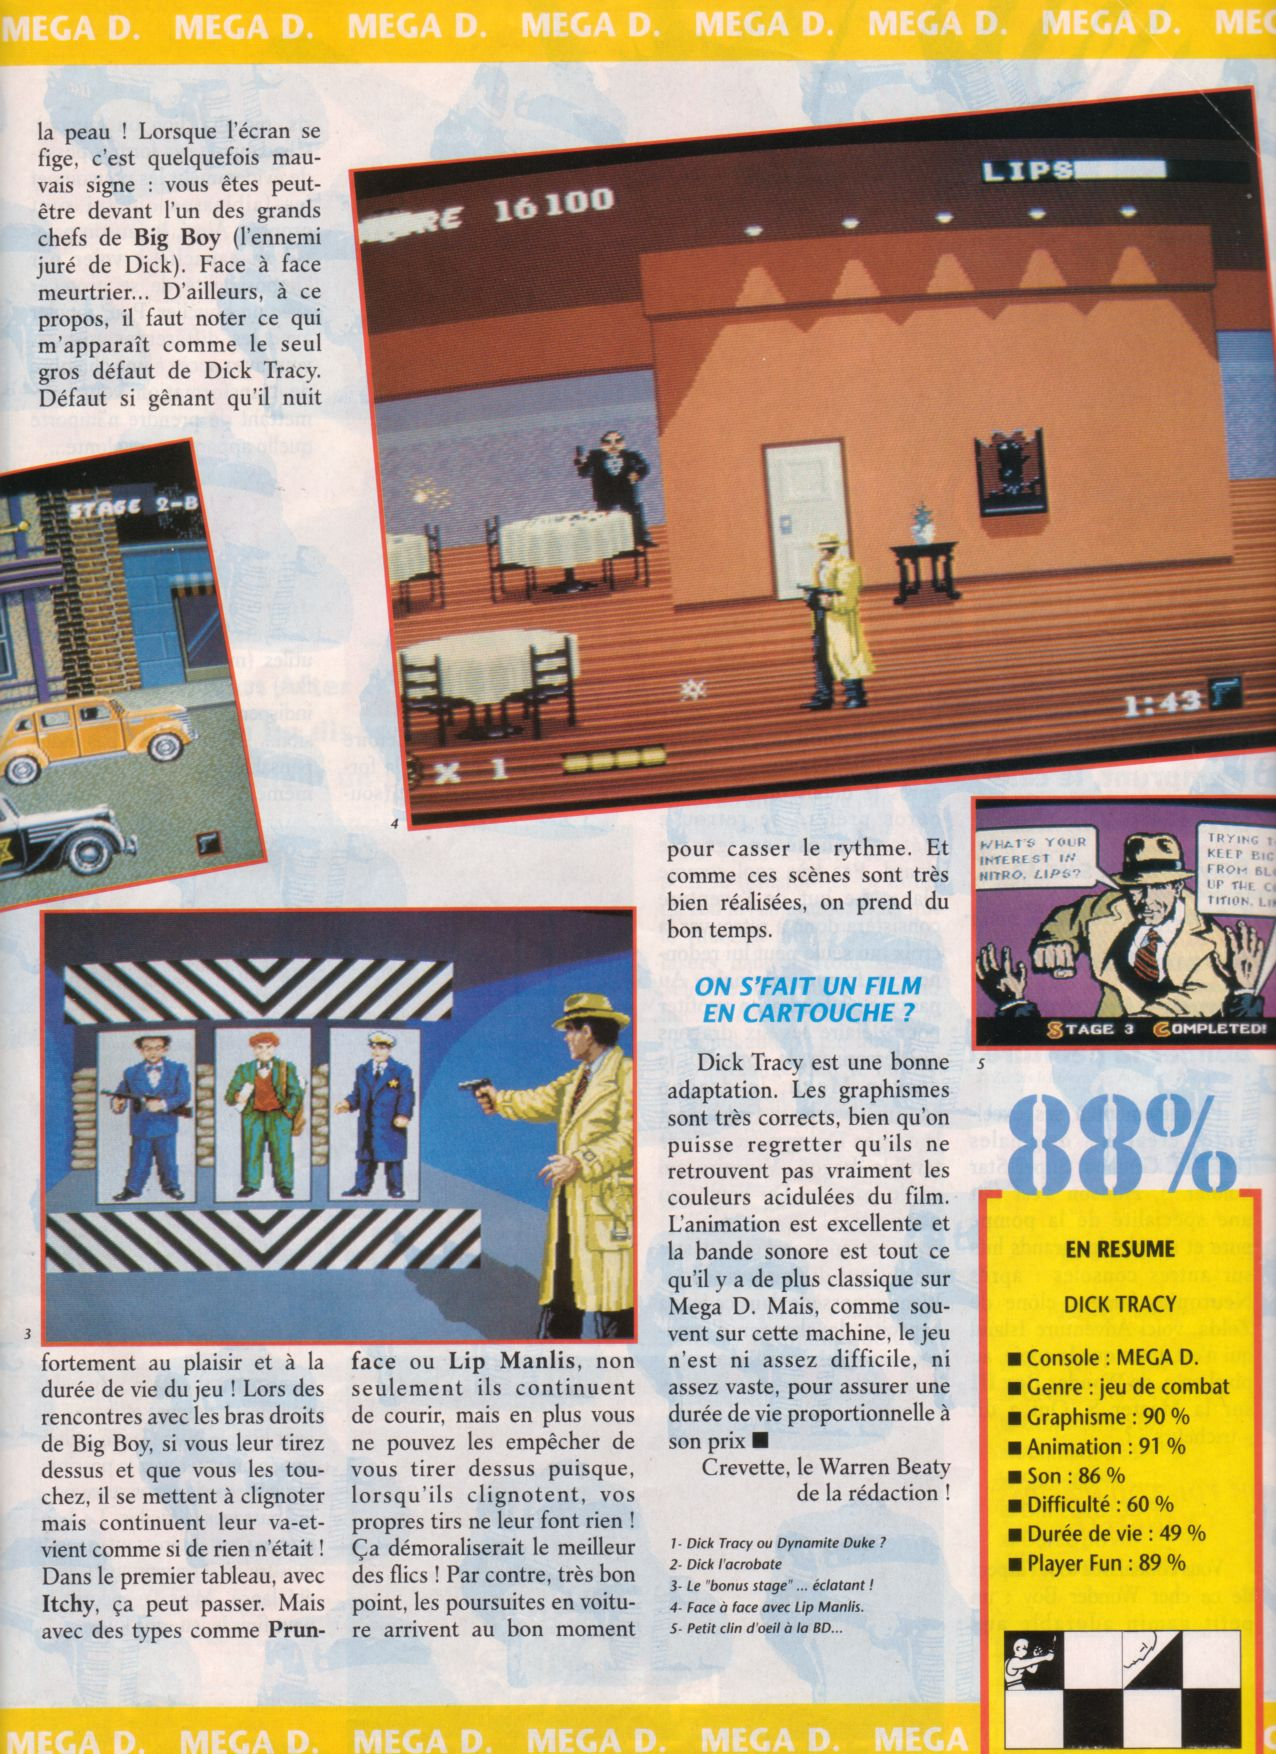 [Jeux]   DICK TRACY (Megadrive) 1990.  Player%20One%20010%20-%20Page%20029%20(1991-06)